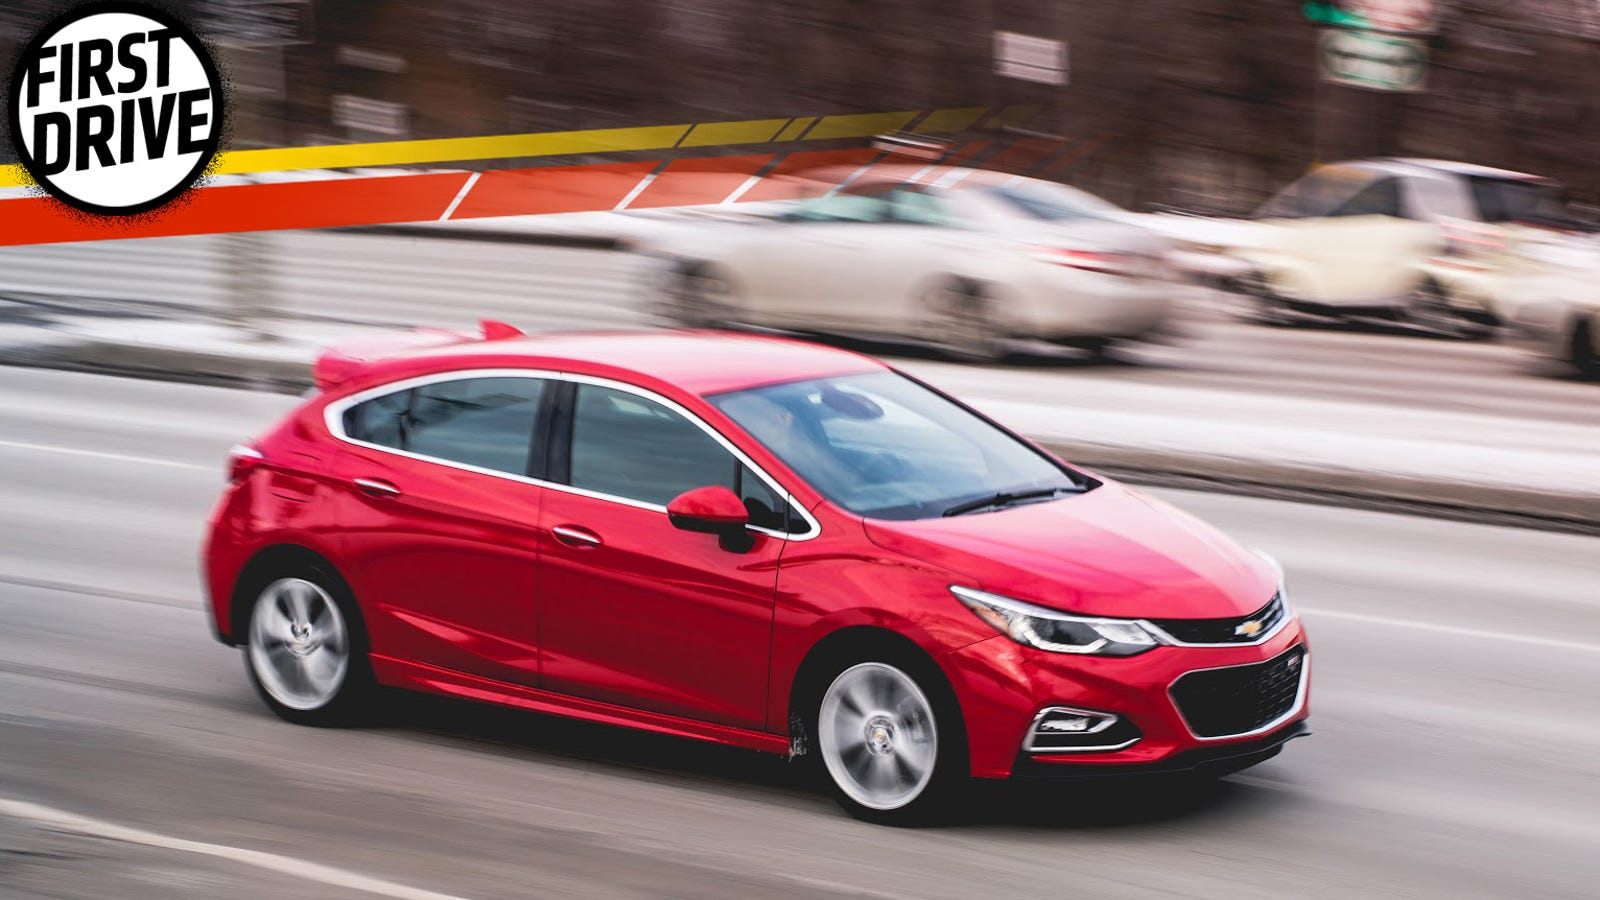 the 2017 chevrolet cruze hatchback could be america 39 s golf if it was more fun. Black Bedroom Furniture Sets. Home Design Ideas